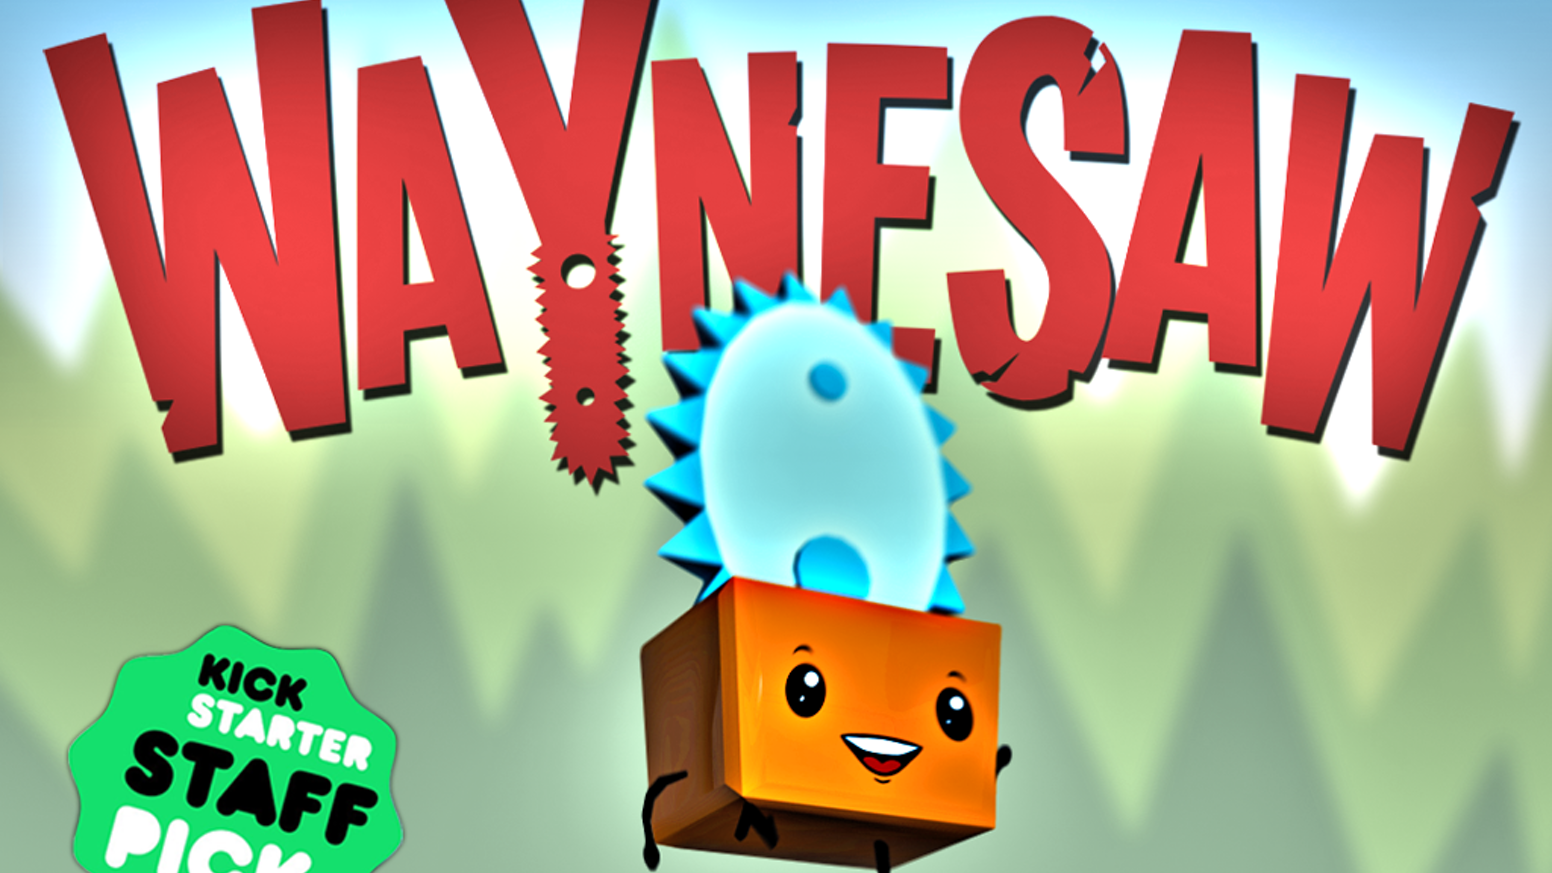 A game starring a friendly little pet chainsaw who has no idea how dangerous he is! Help reunite him with his terrified family!